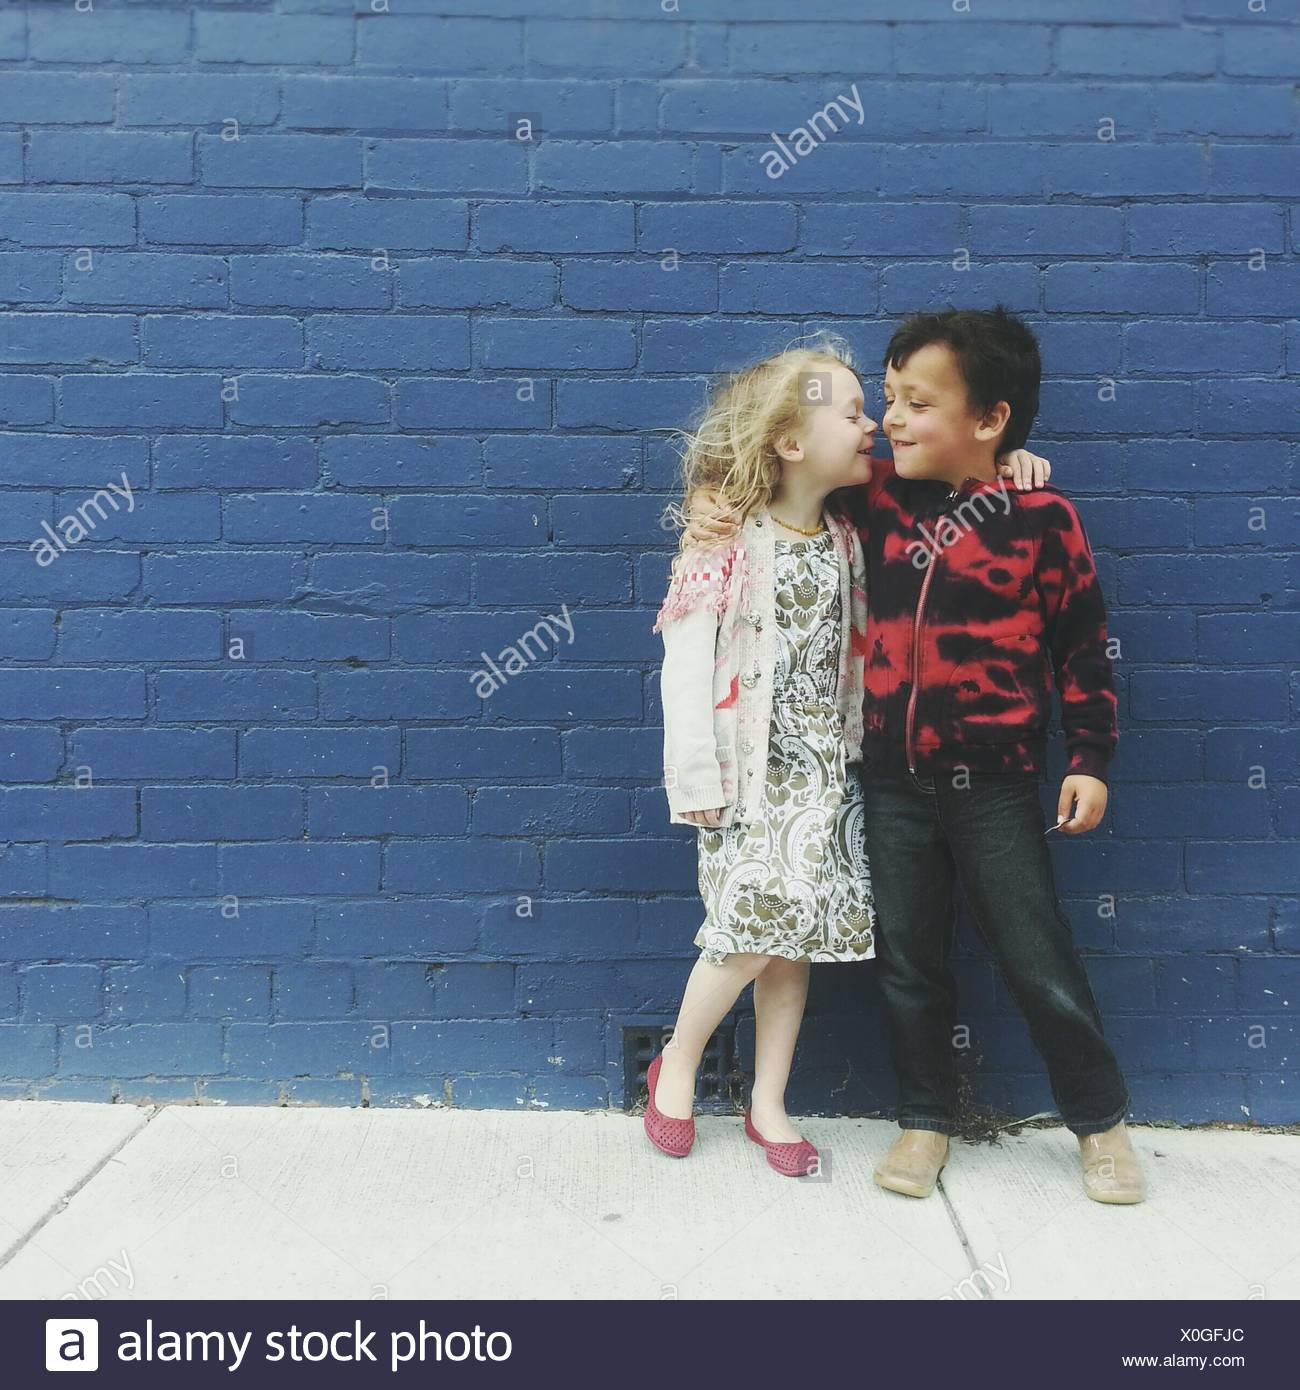 Boy and girl with their arms around each other - Stock Image